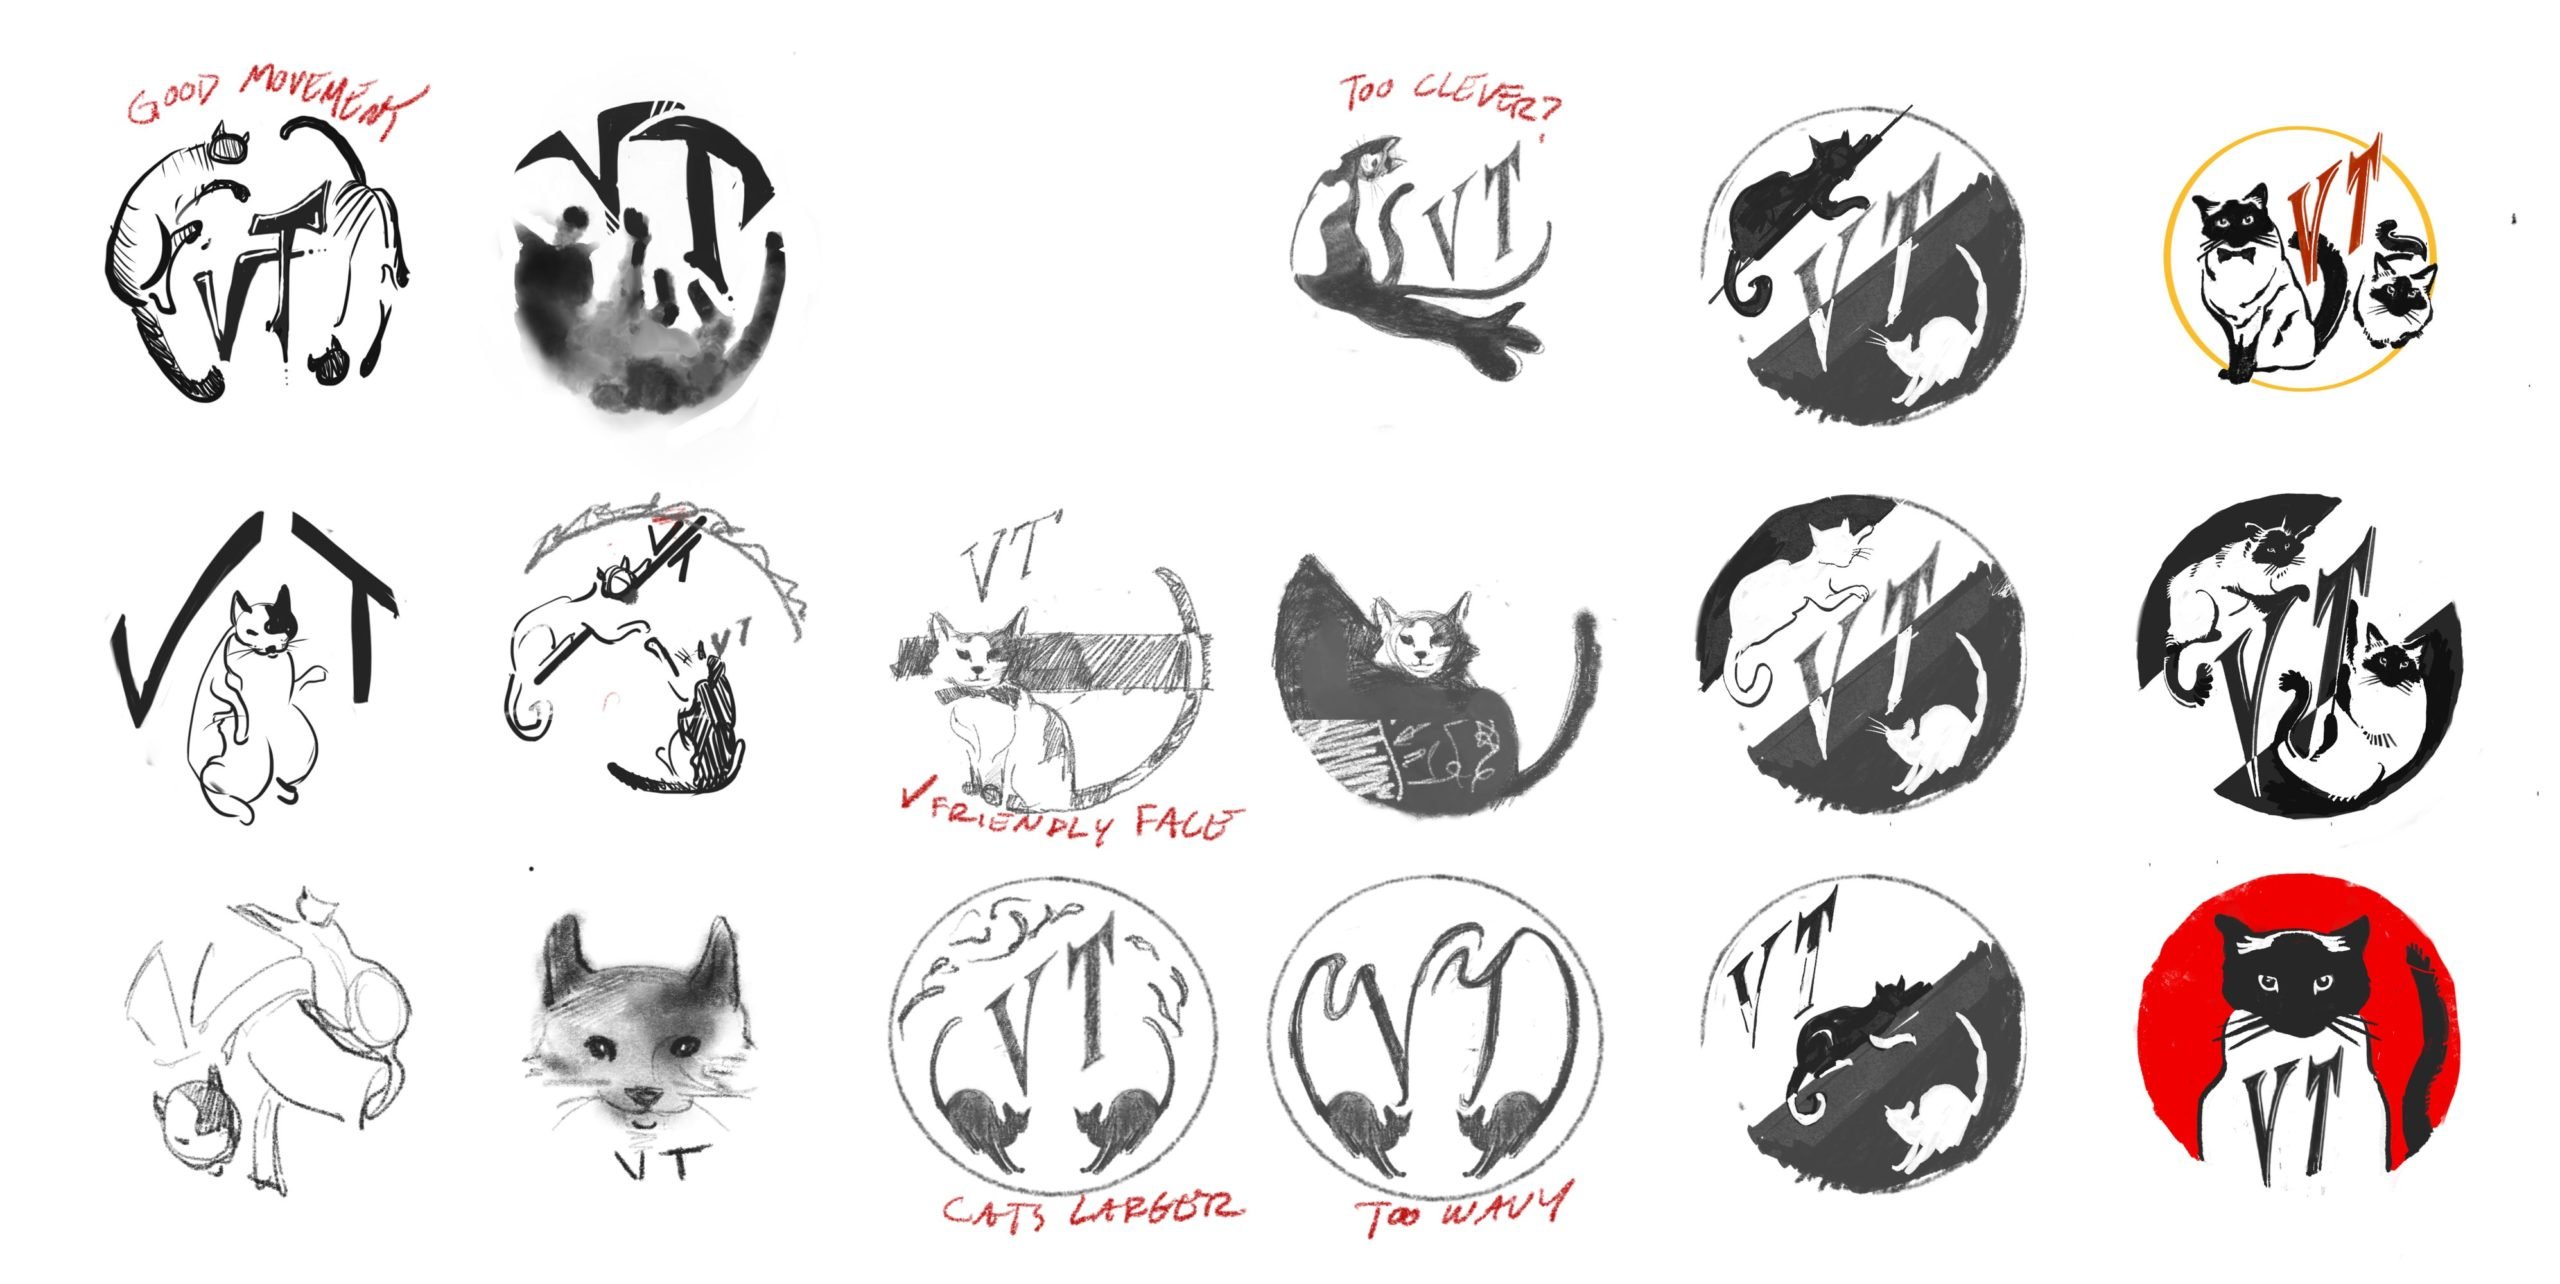 Process Sketches for Virginia Tichenor's Bass Drum Decal